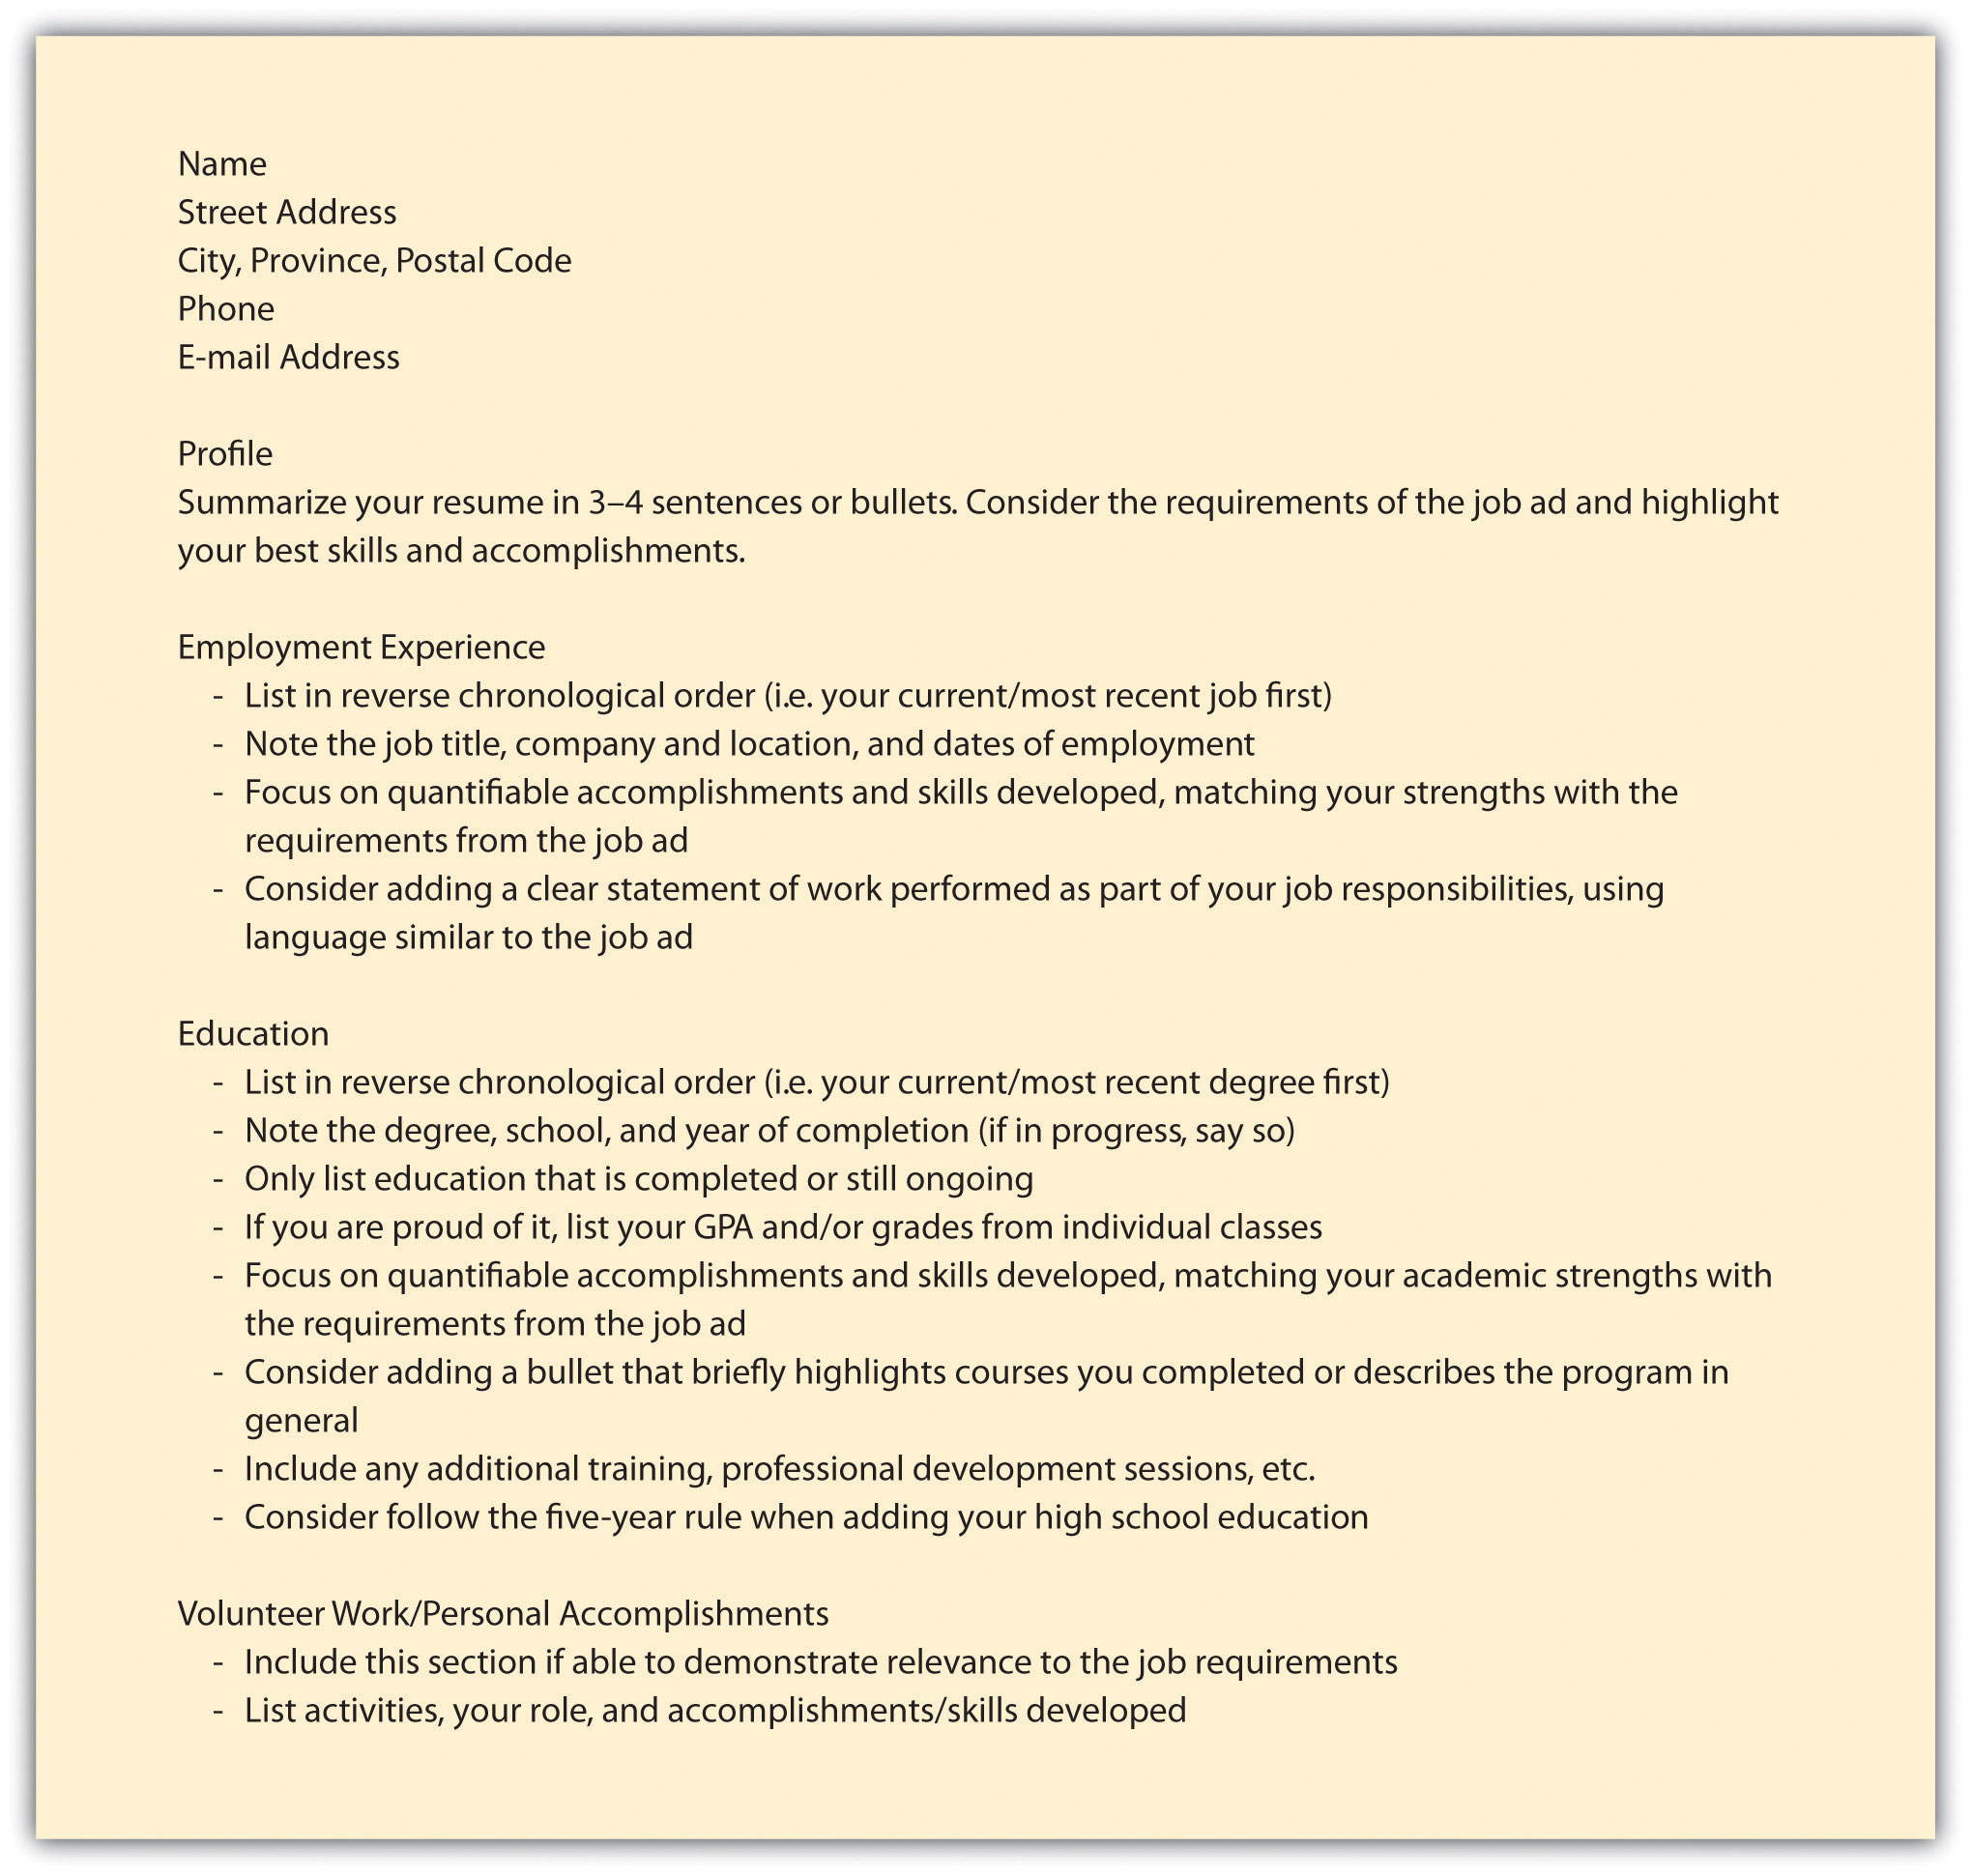 Legal Employment Cover Letter